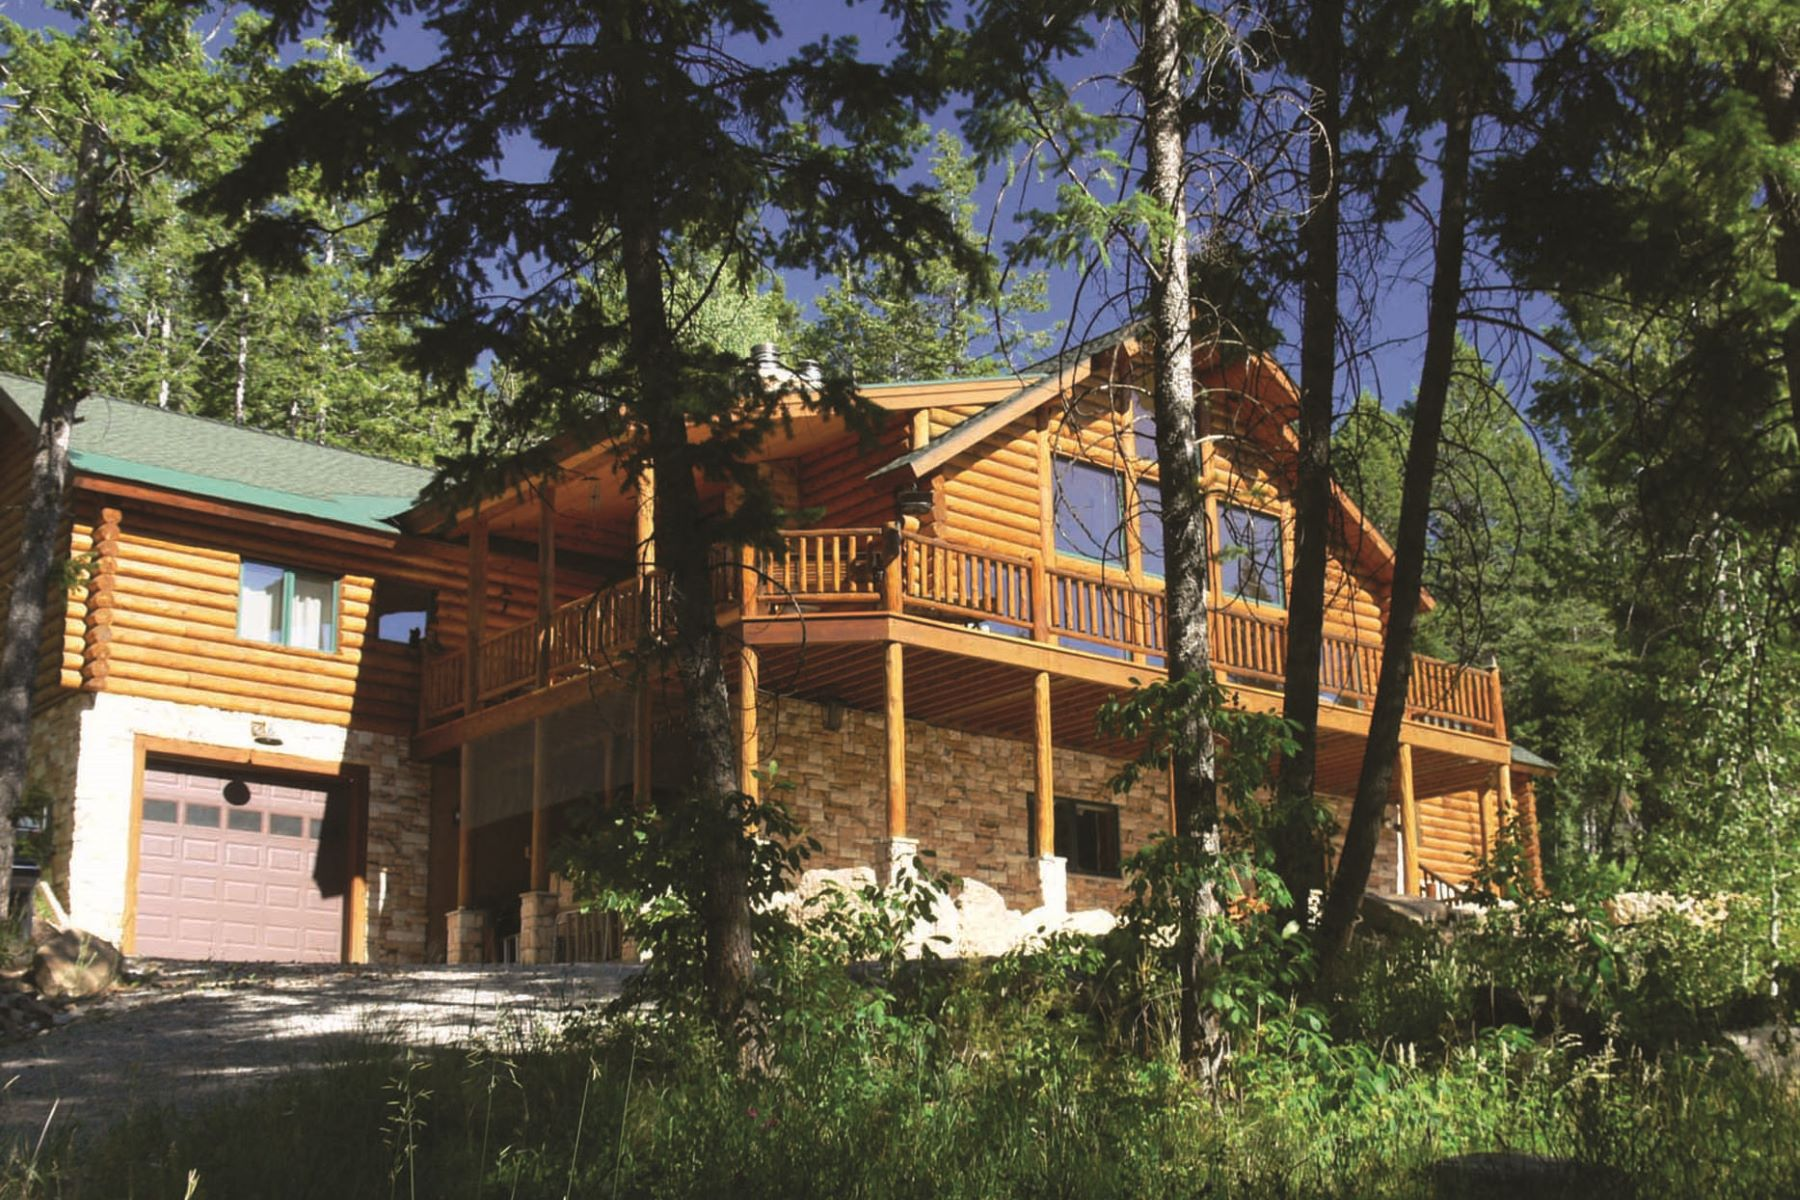 Maison unifamiliale pour l Vente à Private Mountain Retreat in the Trees 3415 Sorensen Creek Victor, Idaho, 83455 Jackson Hole, États-Unis